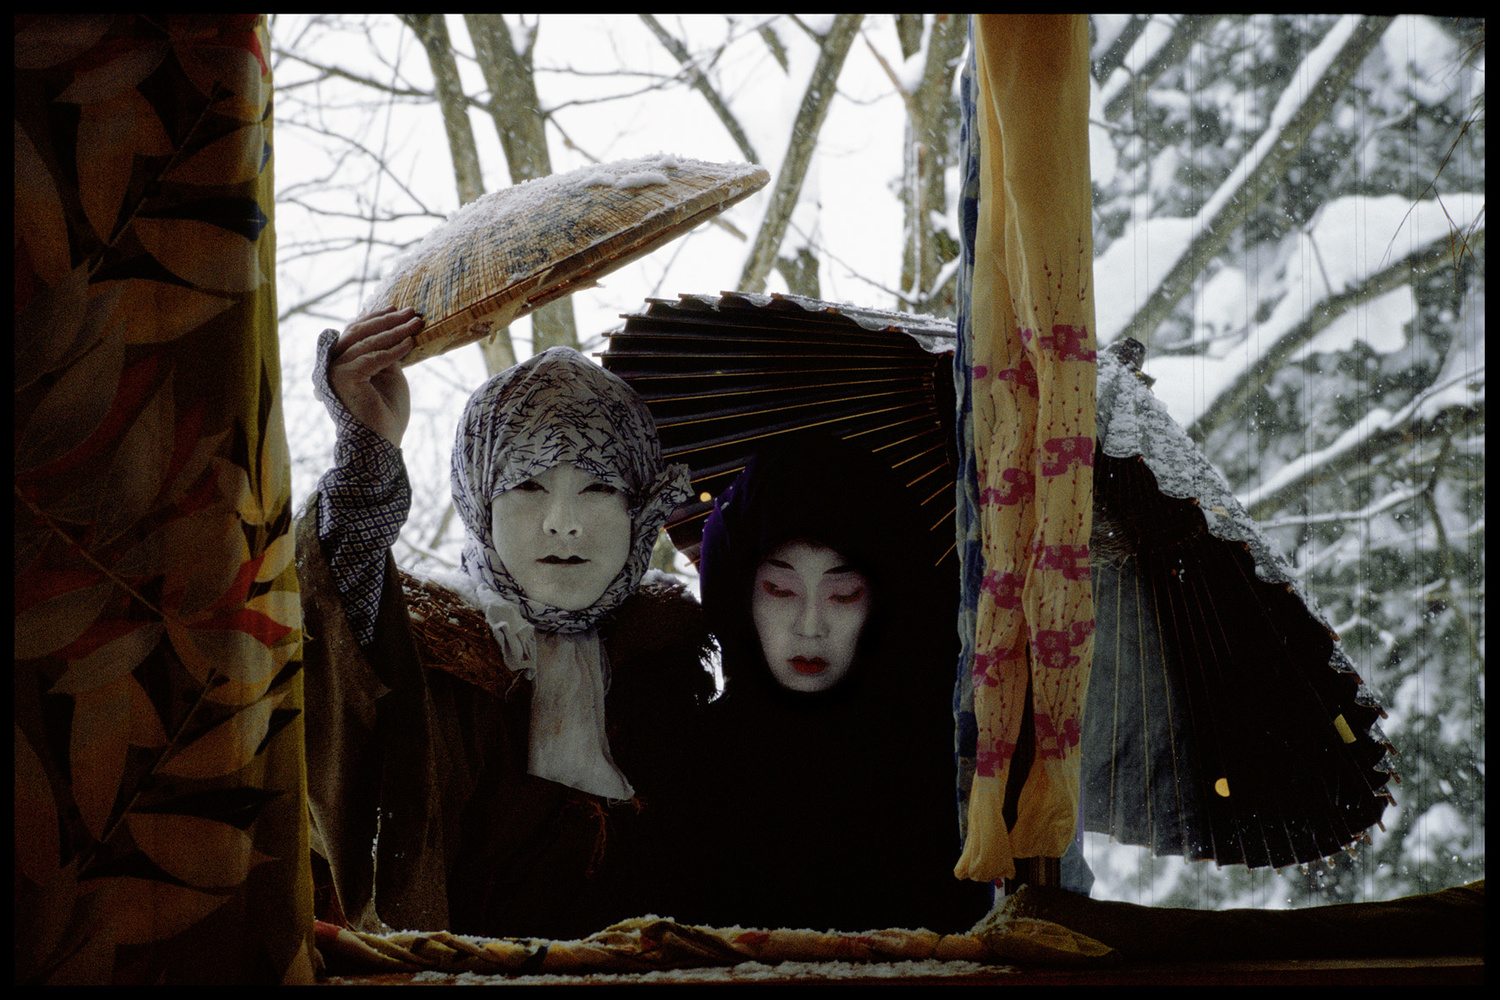 Under Snow. 2011. Germany/Japan. Direction and cinematography by Ulrike Ottinger.